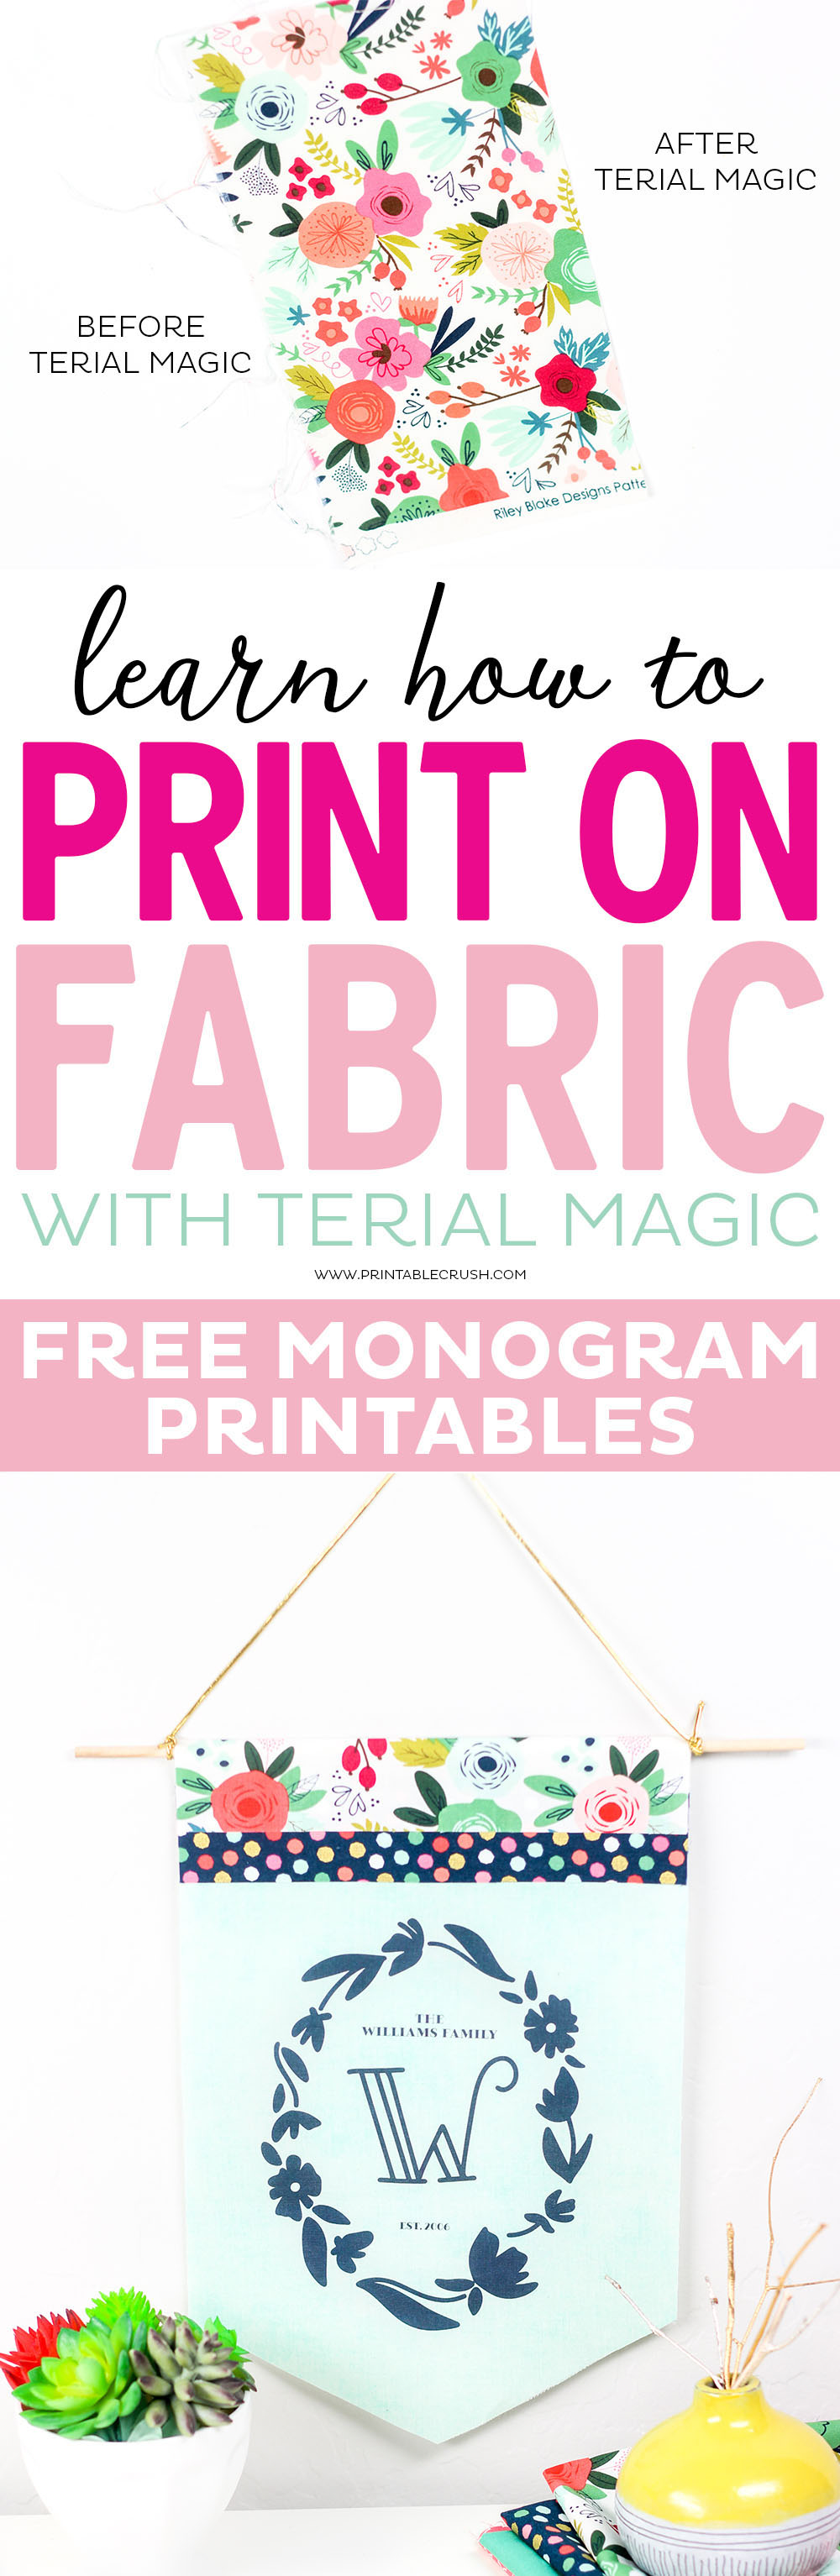 Use Terial Magic to Print on Fabric with your home printer! Comes with FREE Monogram Printables.